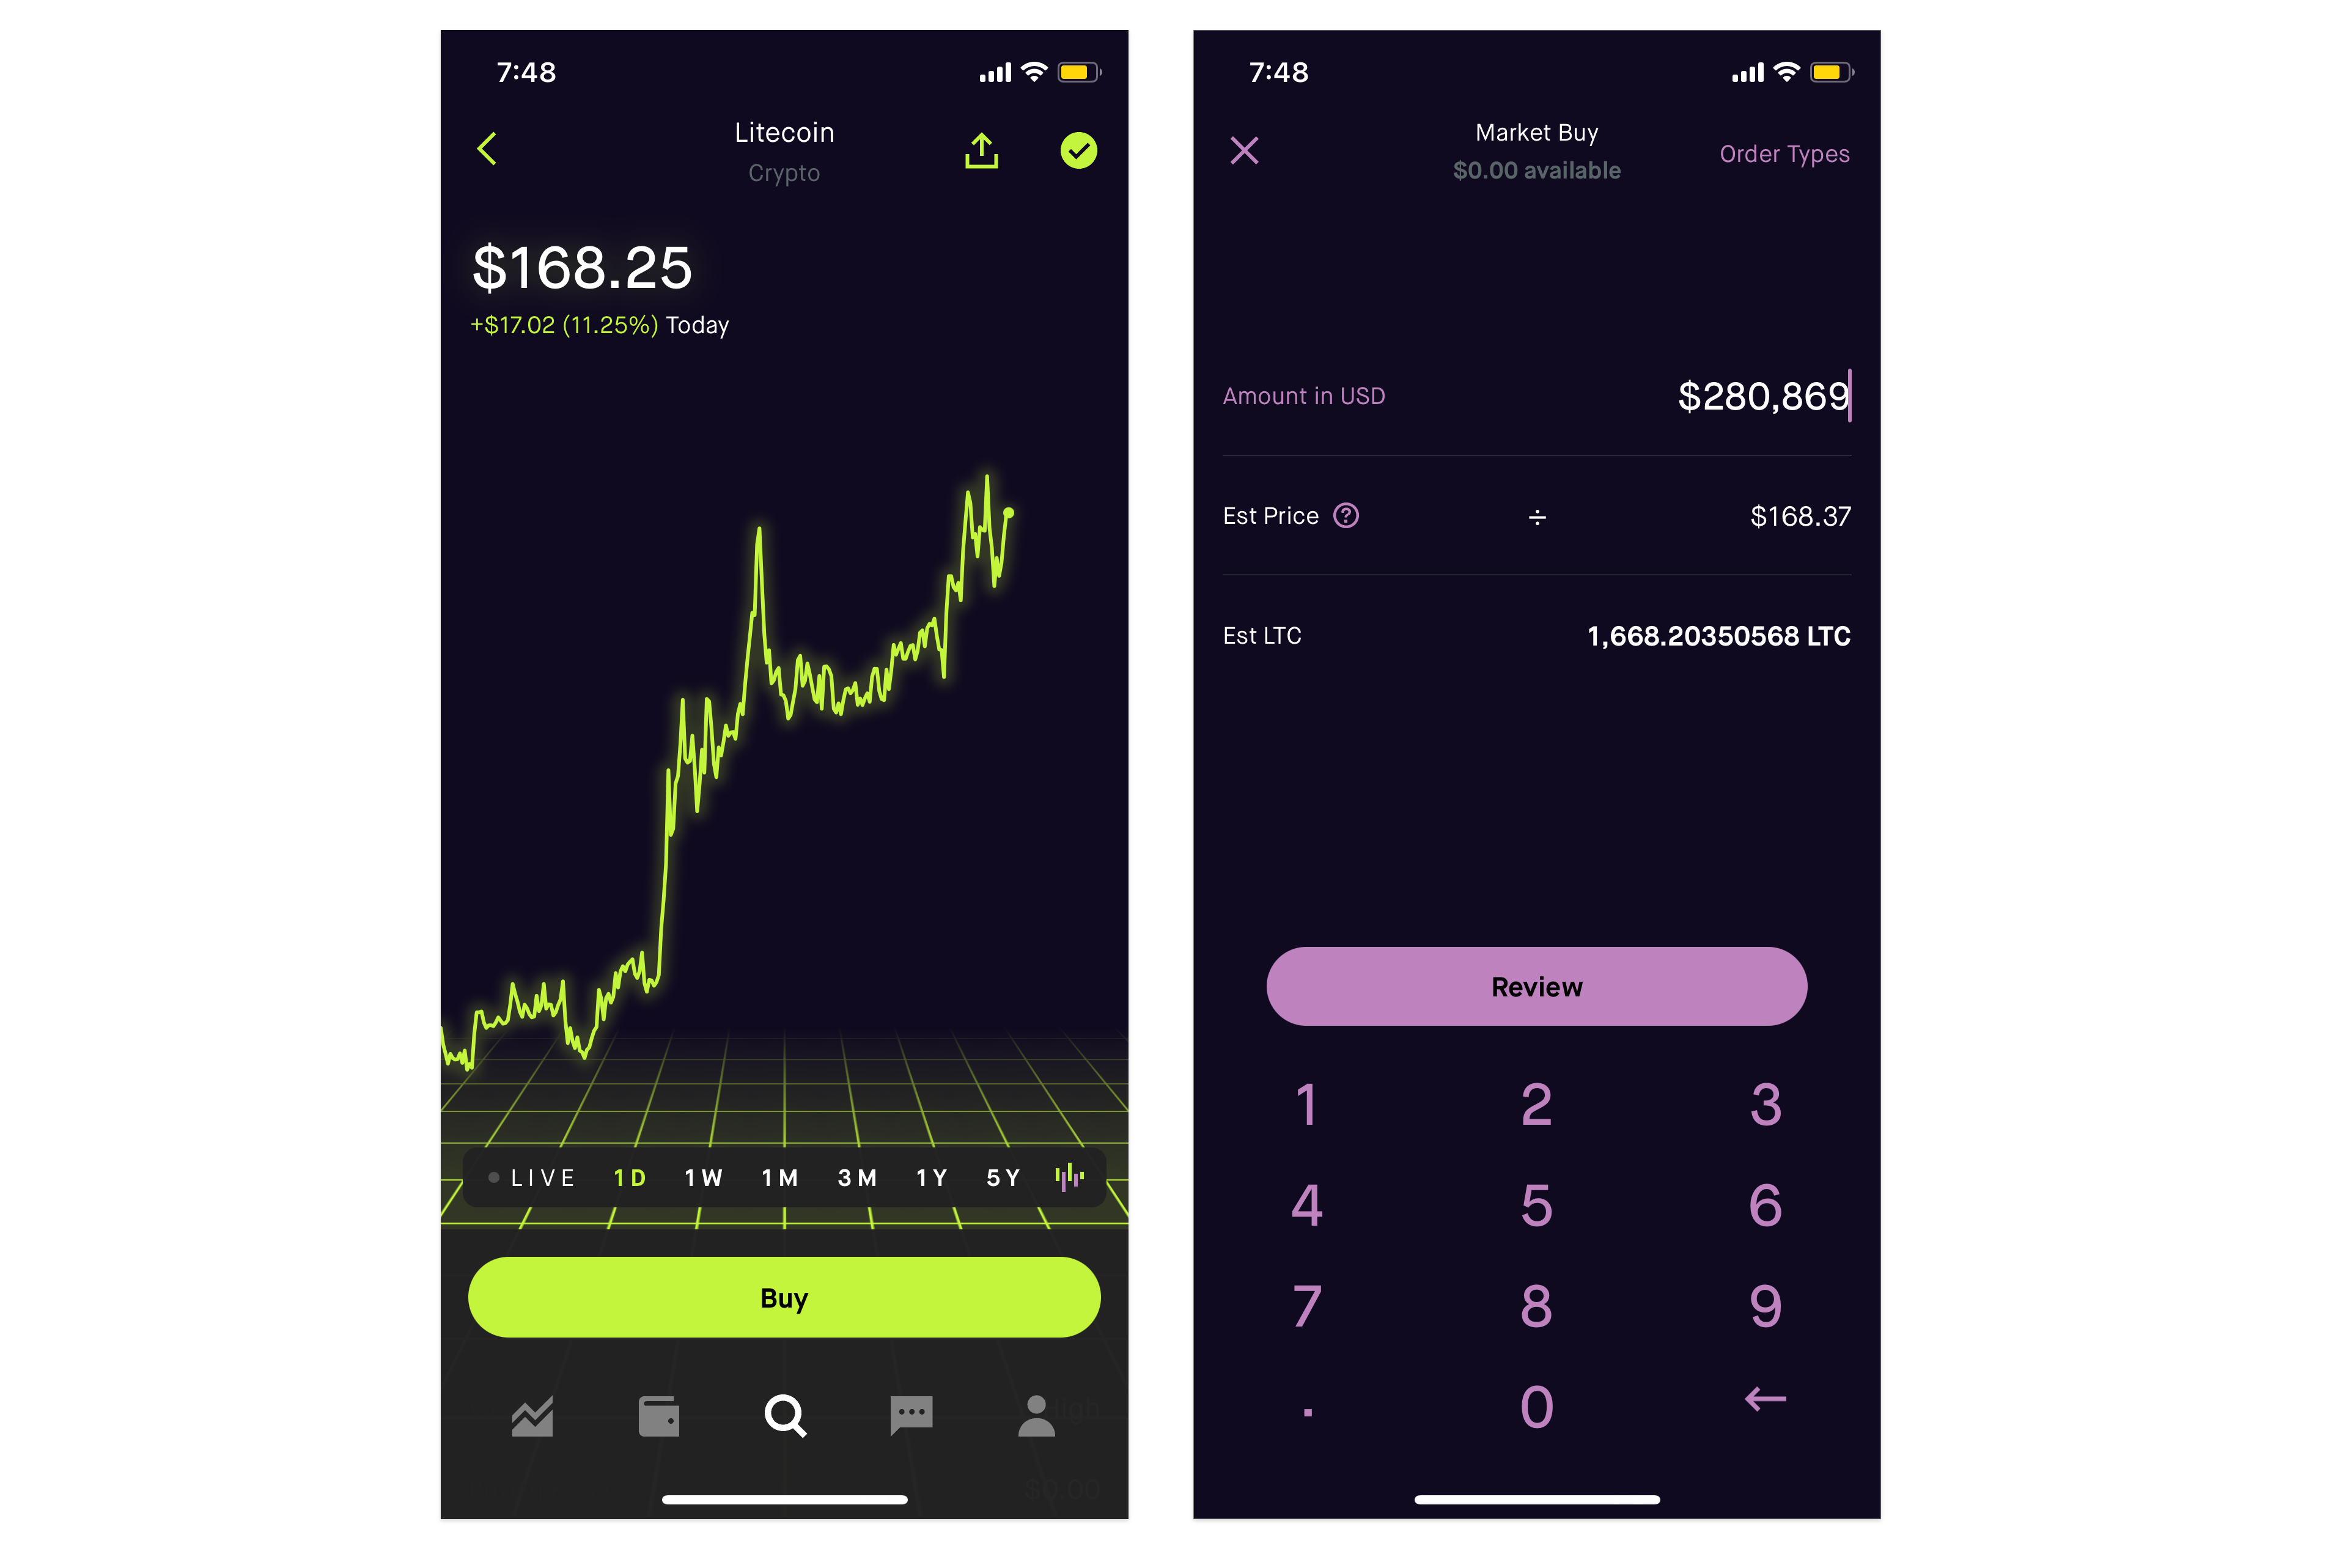 Robinhood App Litecoin landing page and Coin purchase review screen.